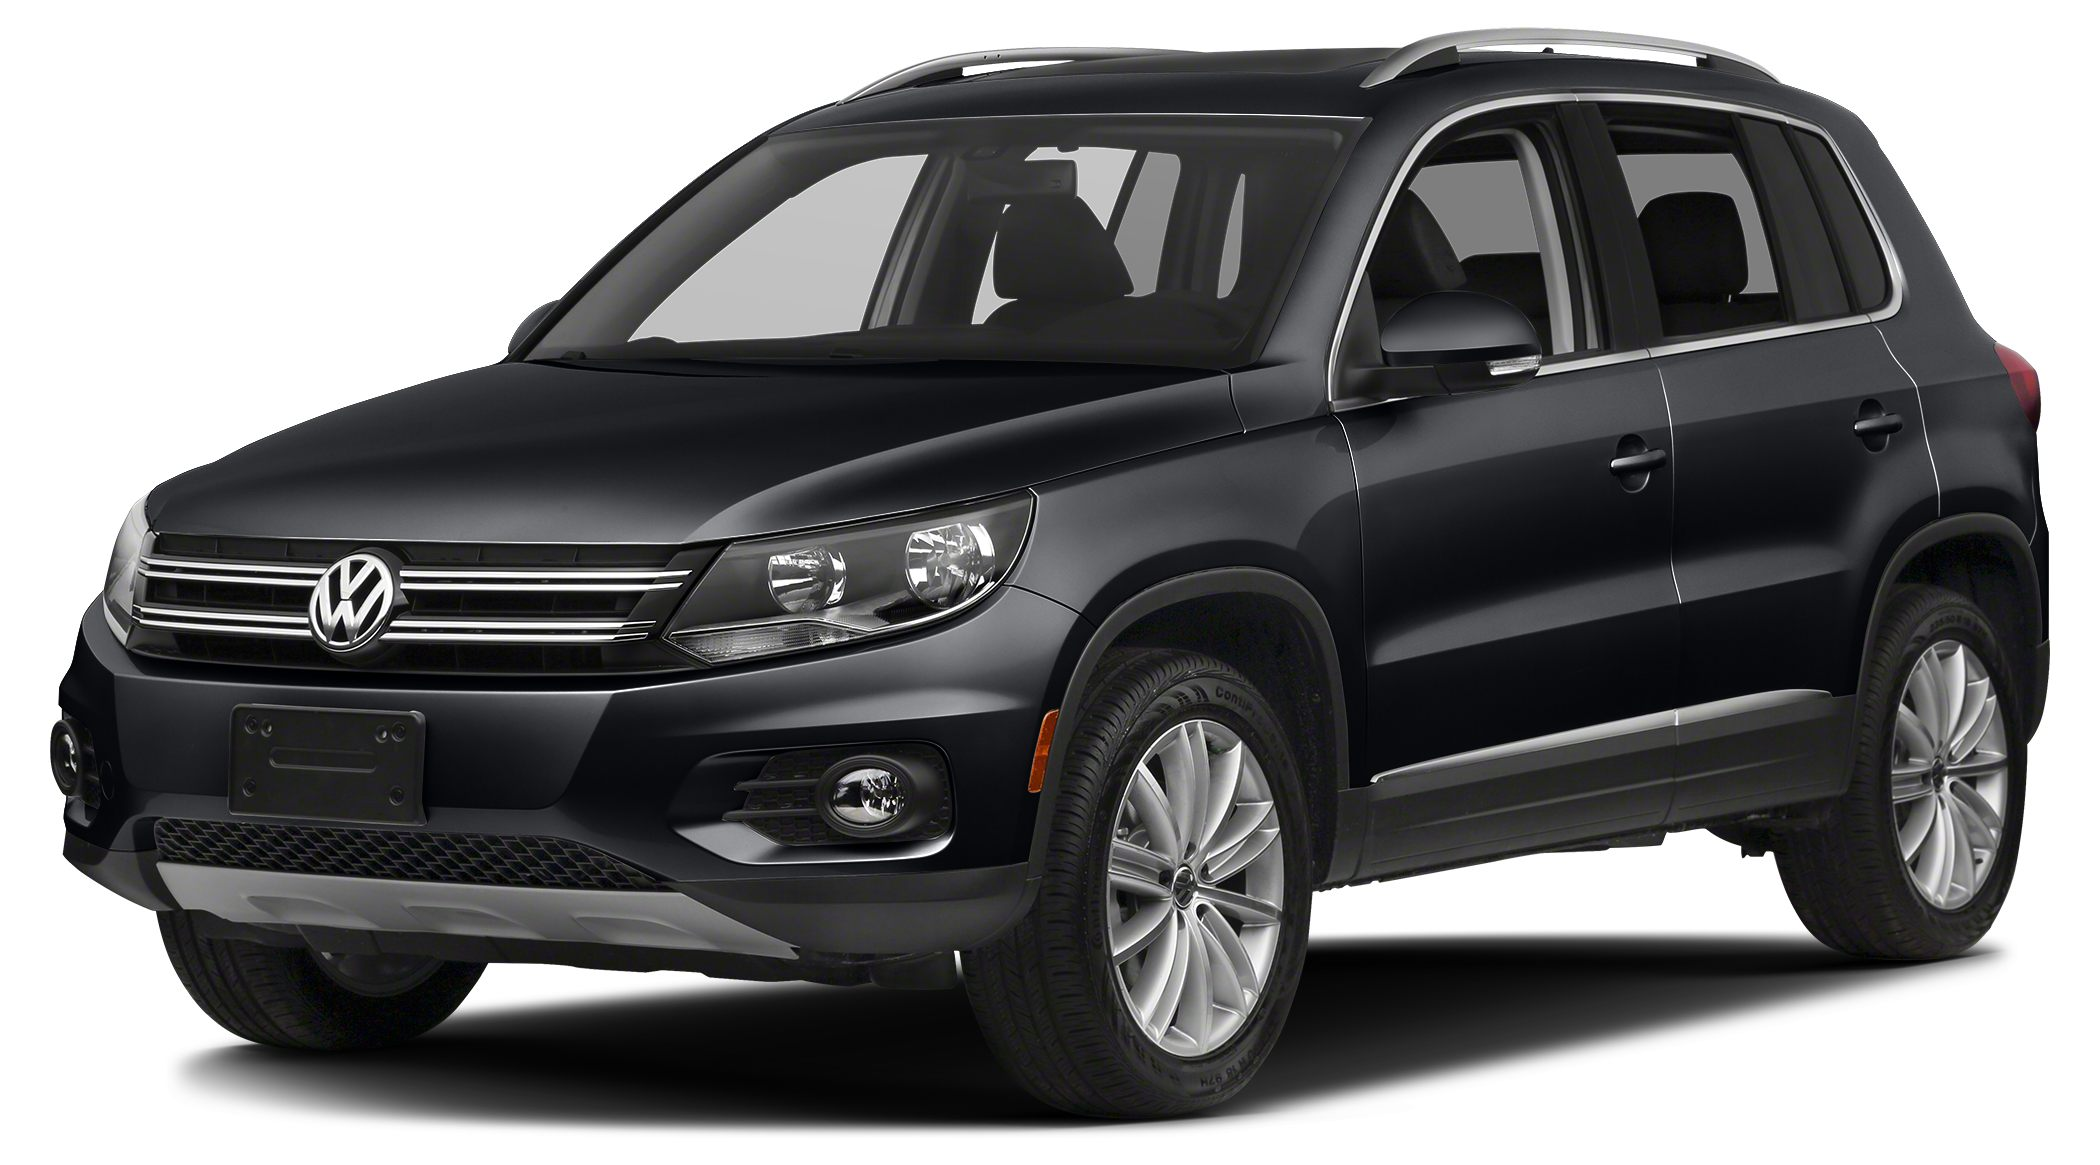 2012 Volkswagen Tiguan S PANORAMIC ROOF NAVIGATION BACKUP CAMERA HEATED SEATS ULTRA LUXURY VE